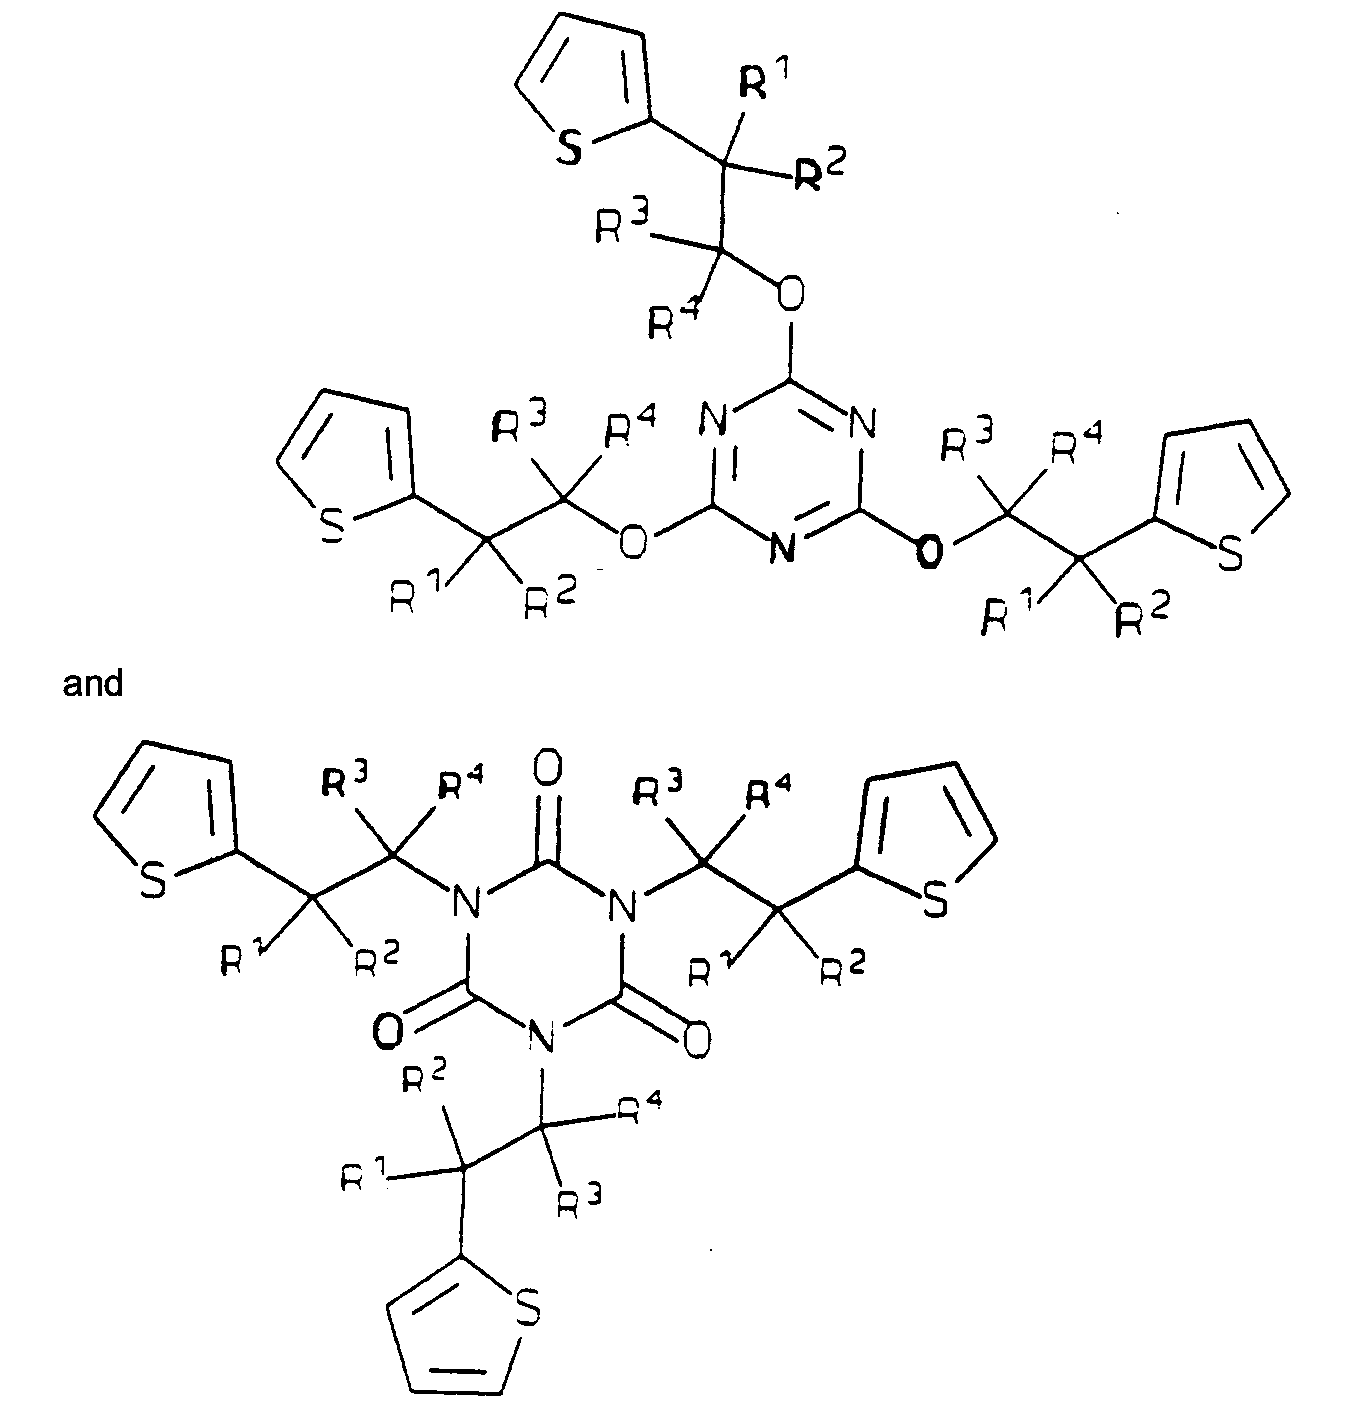 EP0522956A2 - Preparation of 2-(2-thienyl) ethylamine and